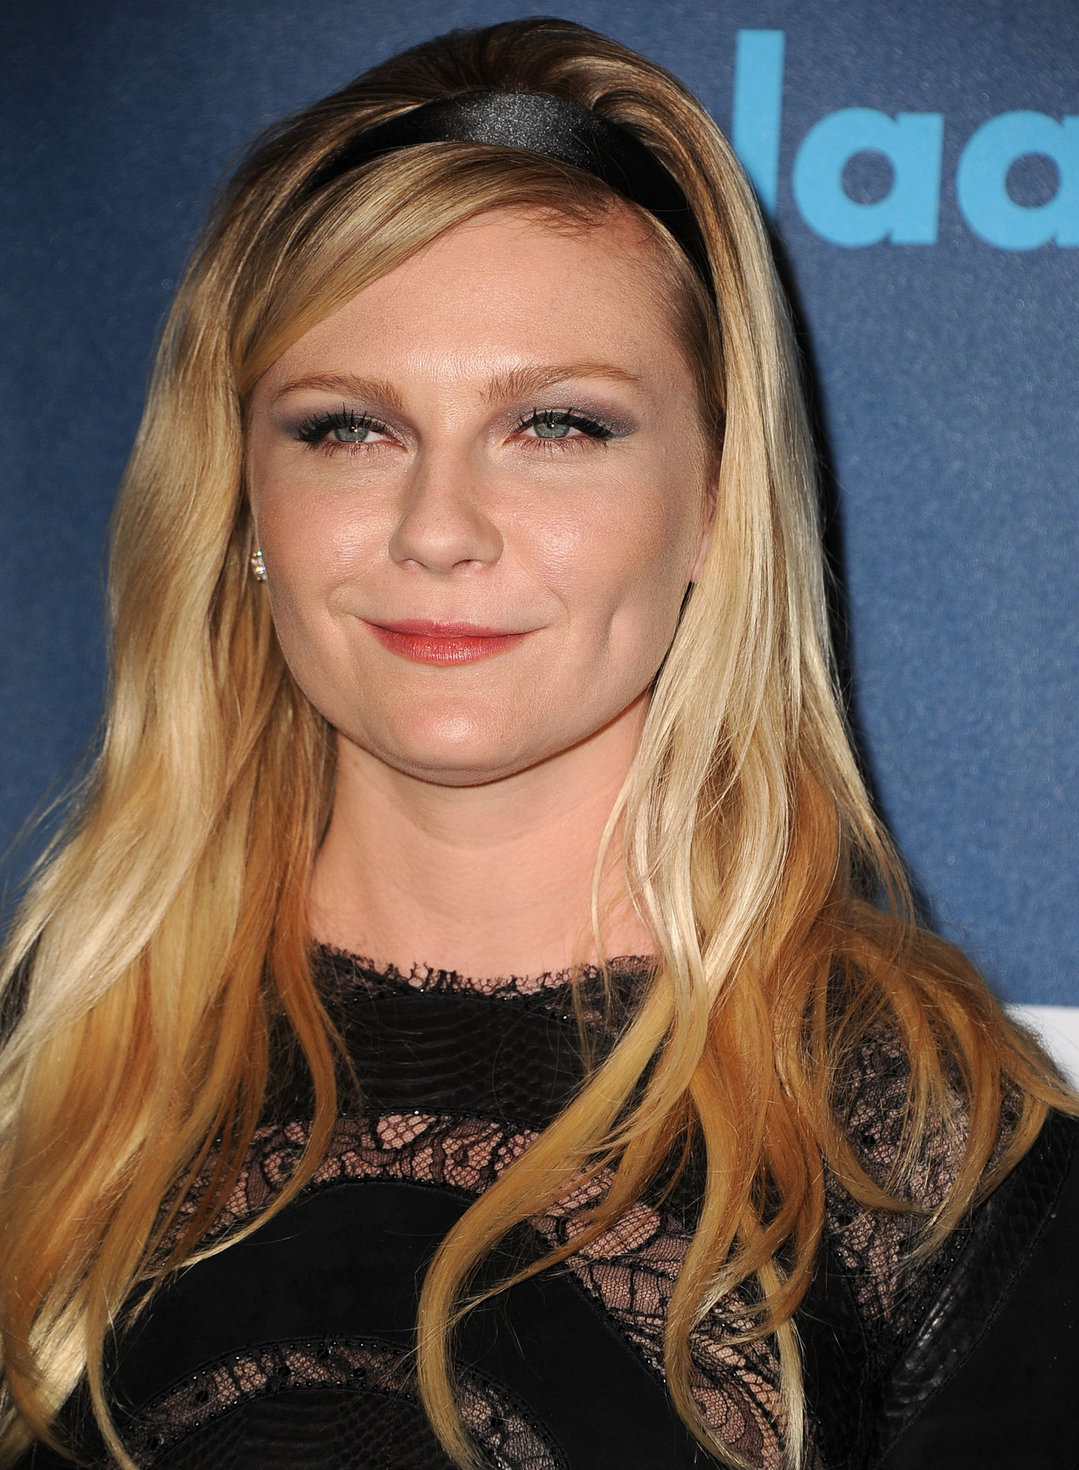 Kirsten Dunst 24th Annual GLAAD Media Awards - Los Angeles, Apr. 20, 2013